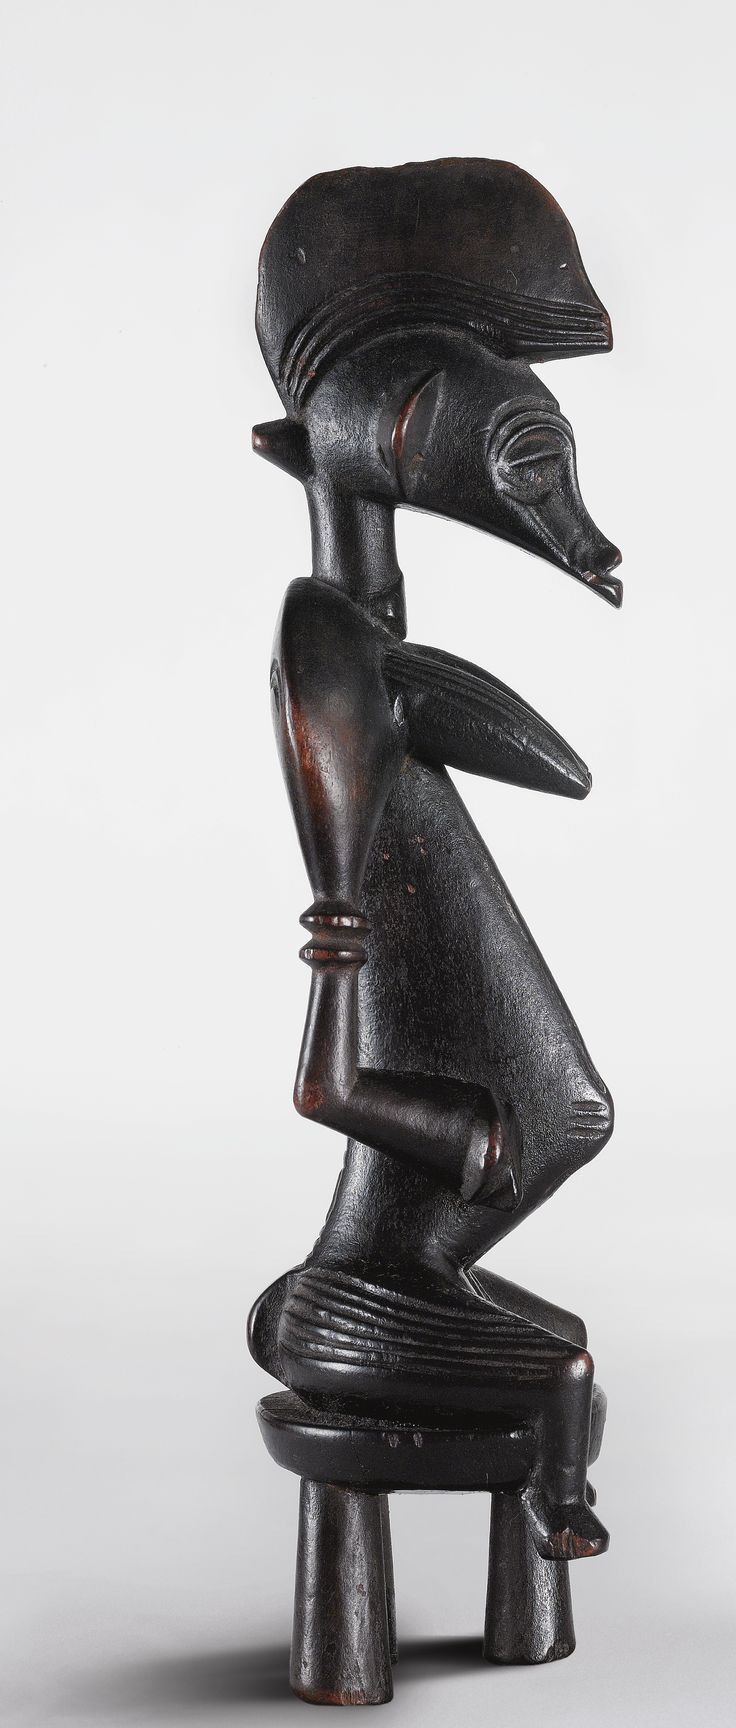 SENUFO SEATED FEMALE FIGURE, IVORY COAST - Small wooden antropomorphic statuettes were used by Senufo diviners, called Sando'o, to communicate with helpful spirits living in the wilderness. The name tugubele applies to both the spirits and the mediating statuettes. Artists creating tugubele followed closely the instructions given to them by the diviner who would have been told certain details about the figure's required appearance, gender, posture, scarification marks etc. directly by the…